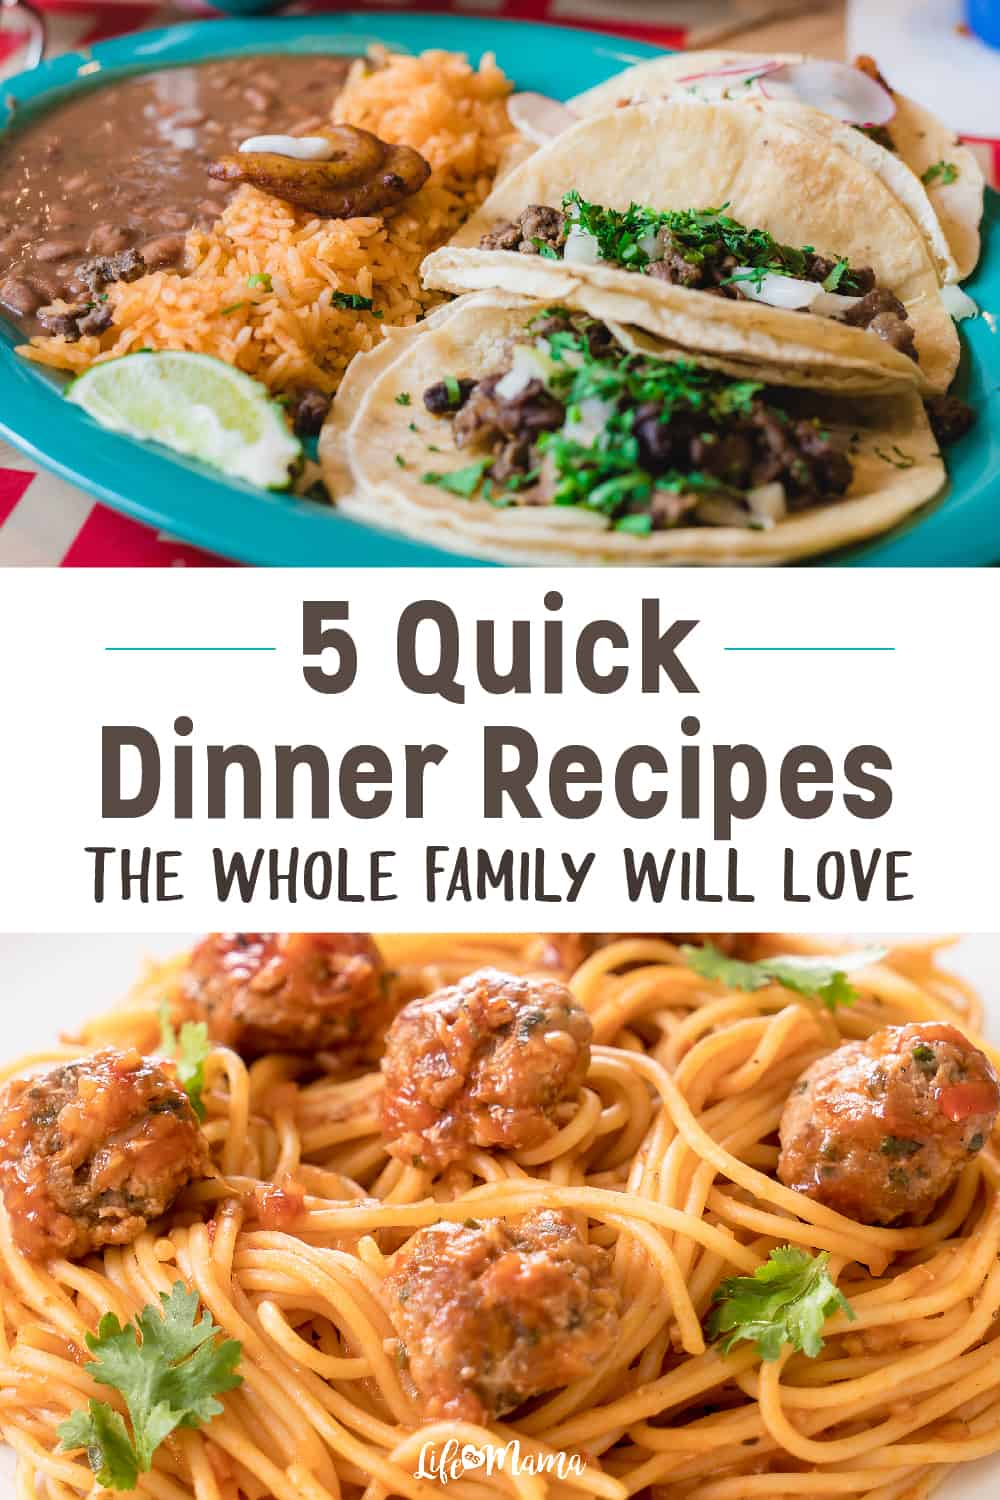 5 Quick Dinner Recipes the Whole Family Will Love